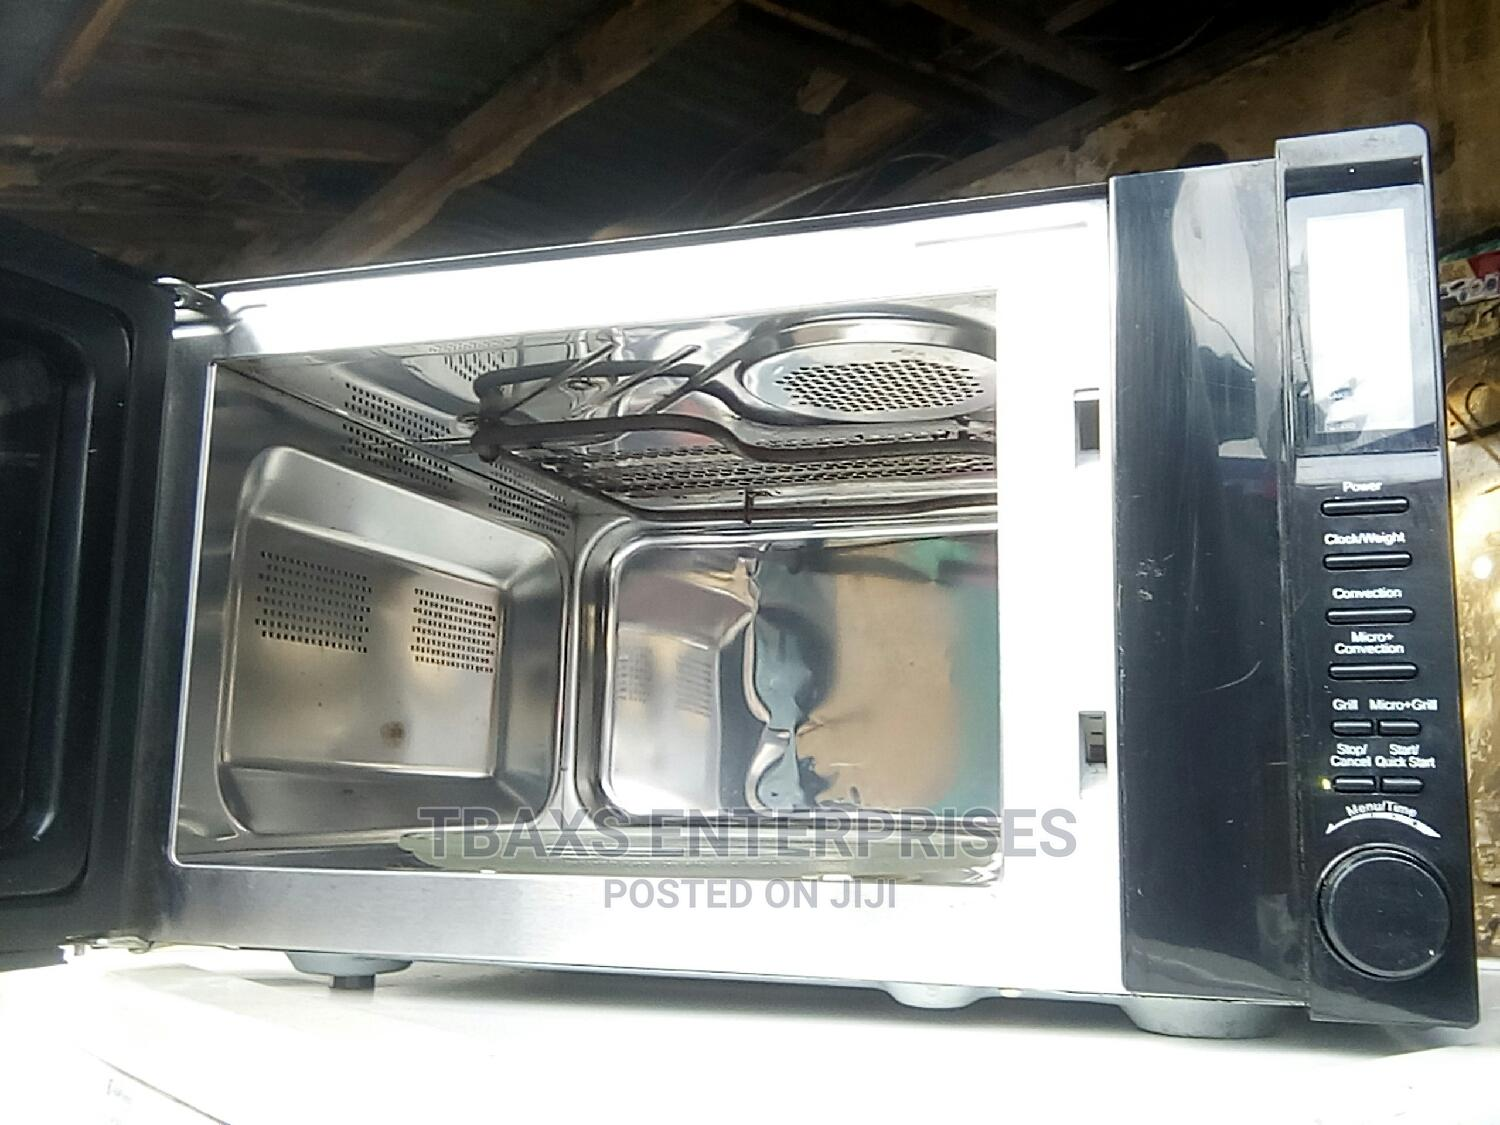 Archive: 3in1 Uk Used Microwave Oven and Grill